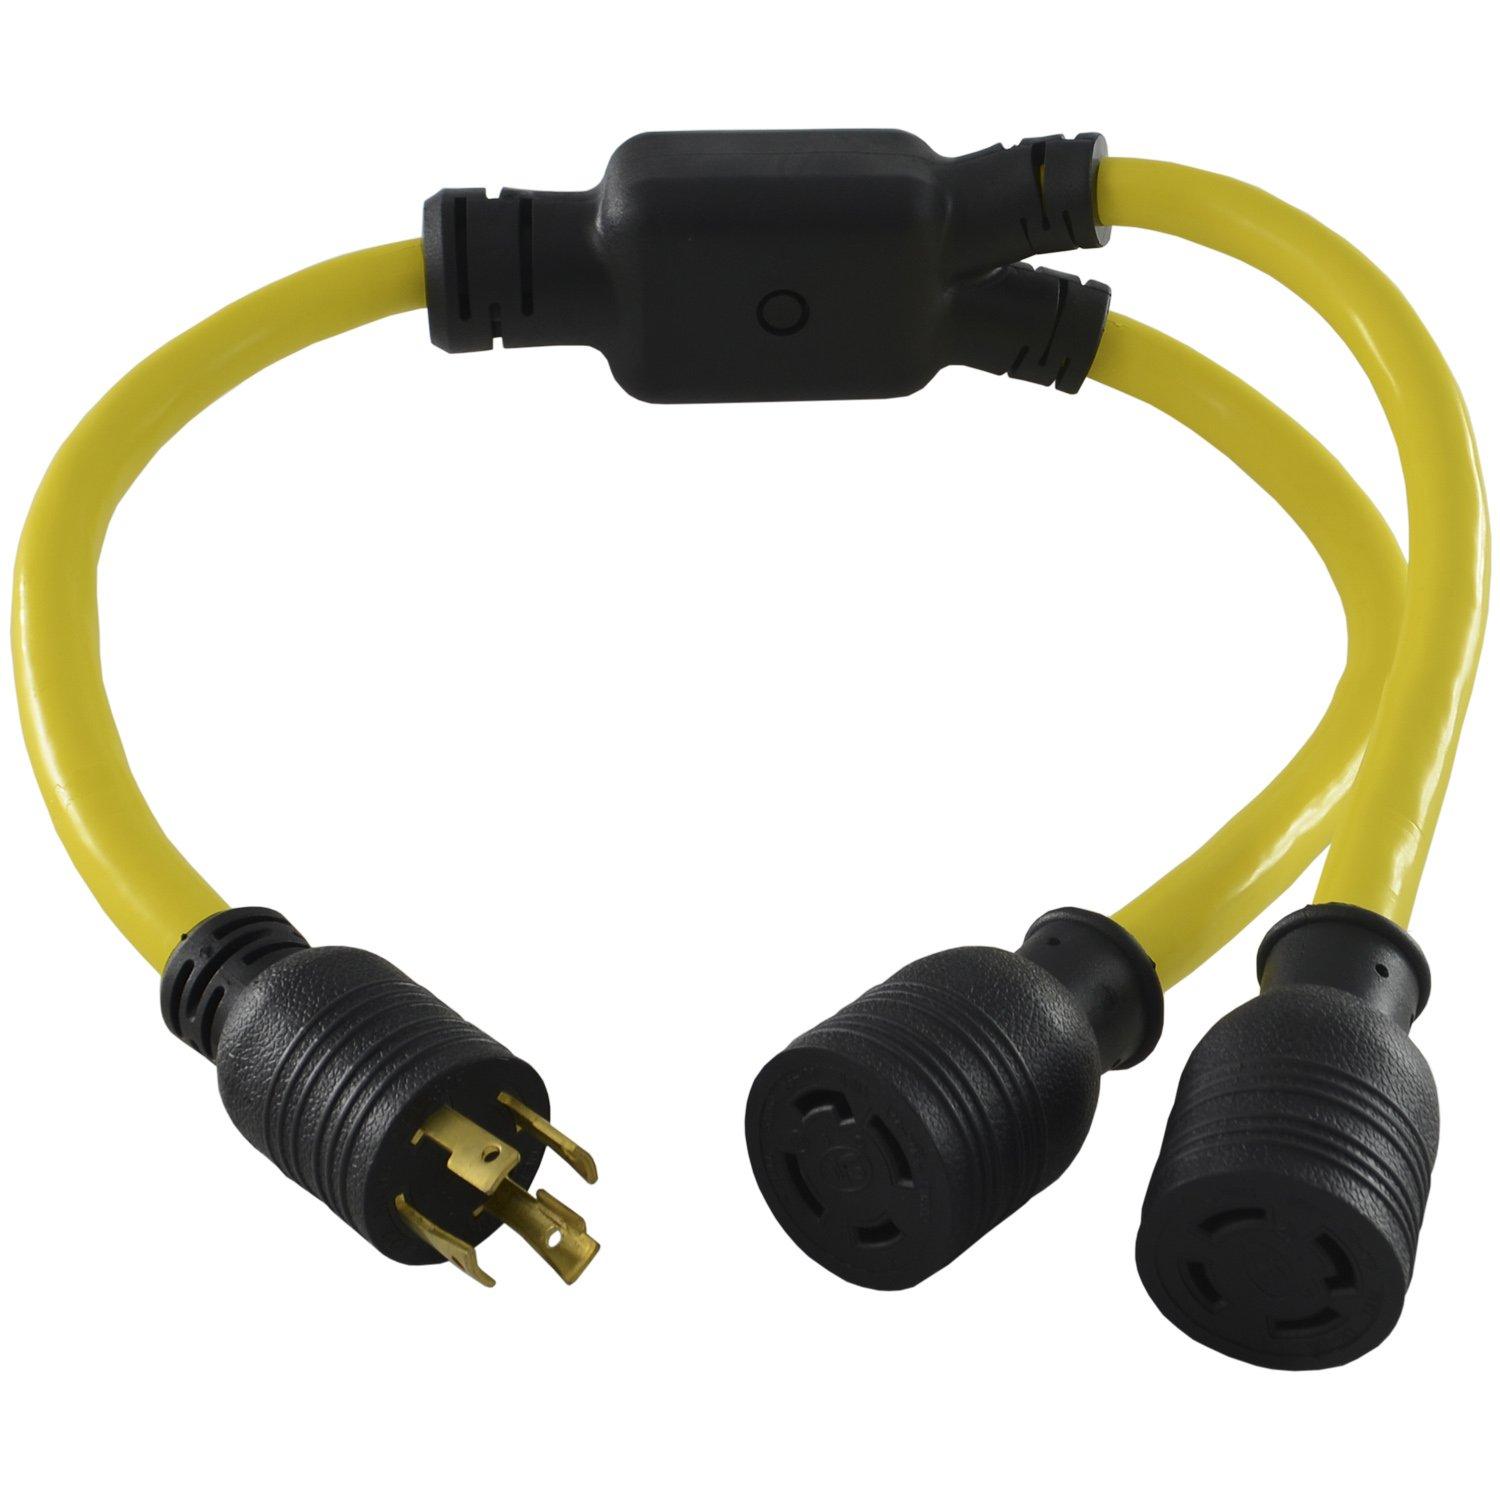 Conntek YL1430L1430 Y-Adapter Cord